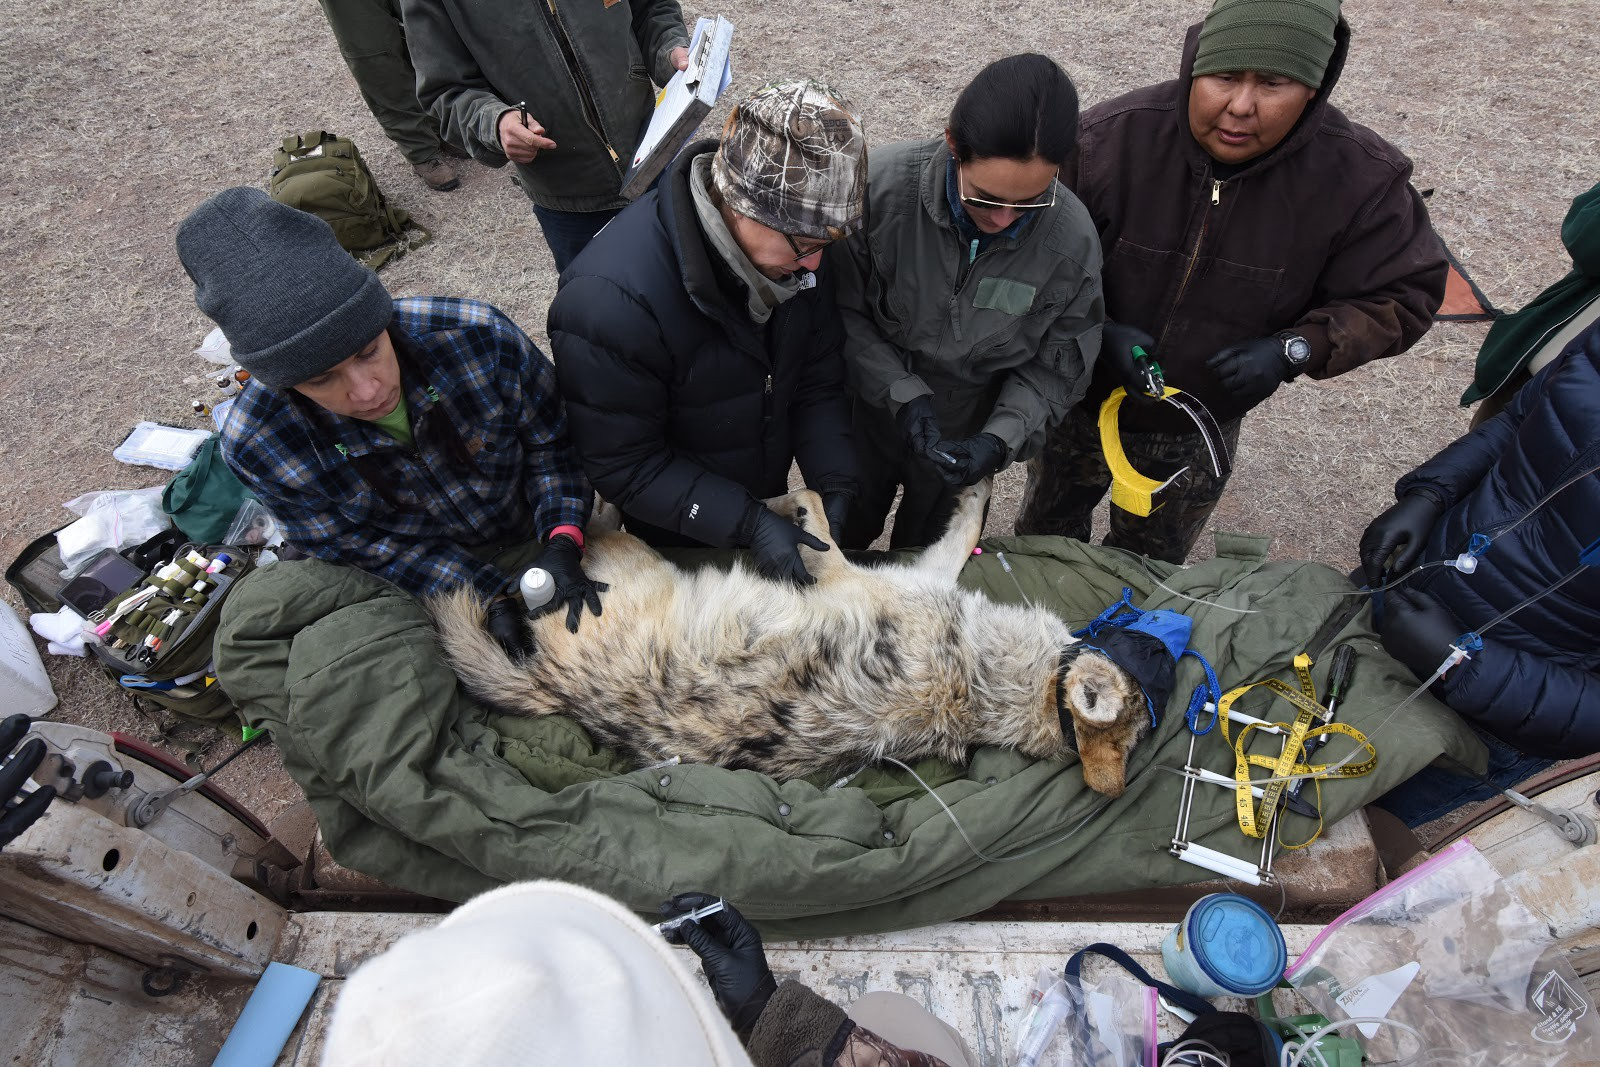 Four biologists and veterinarians work on a sedated wolf set on top of a blanket on a table outdoors.